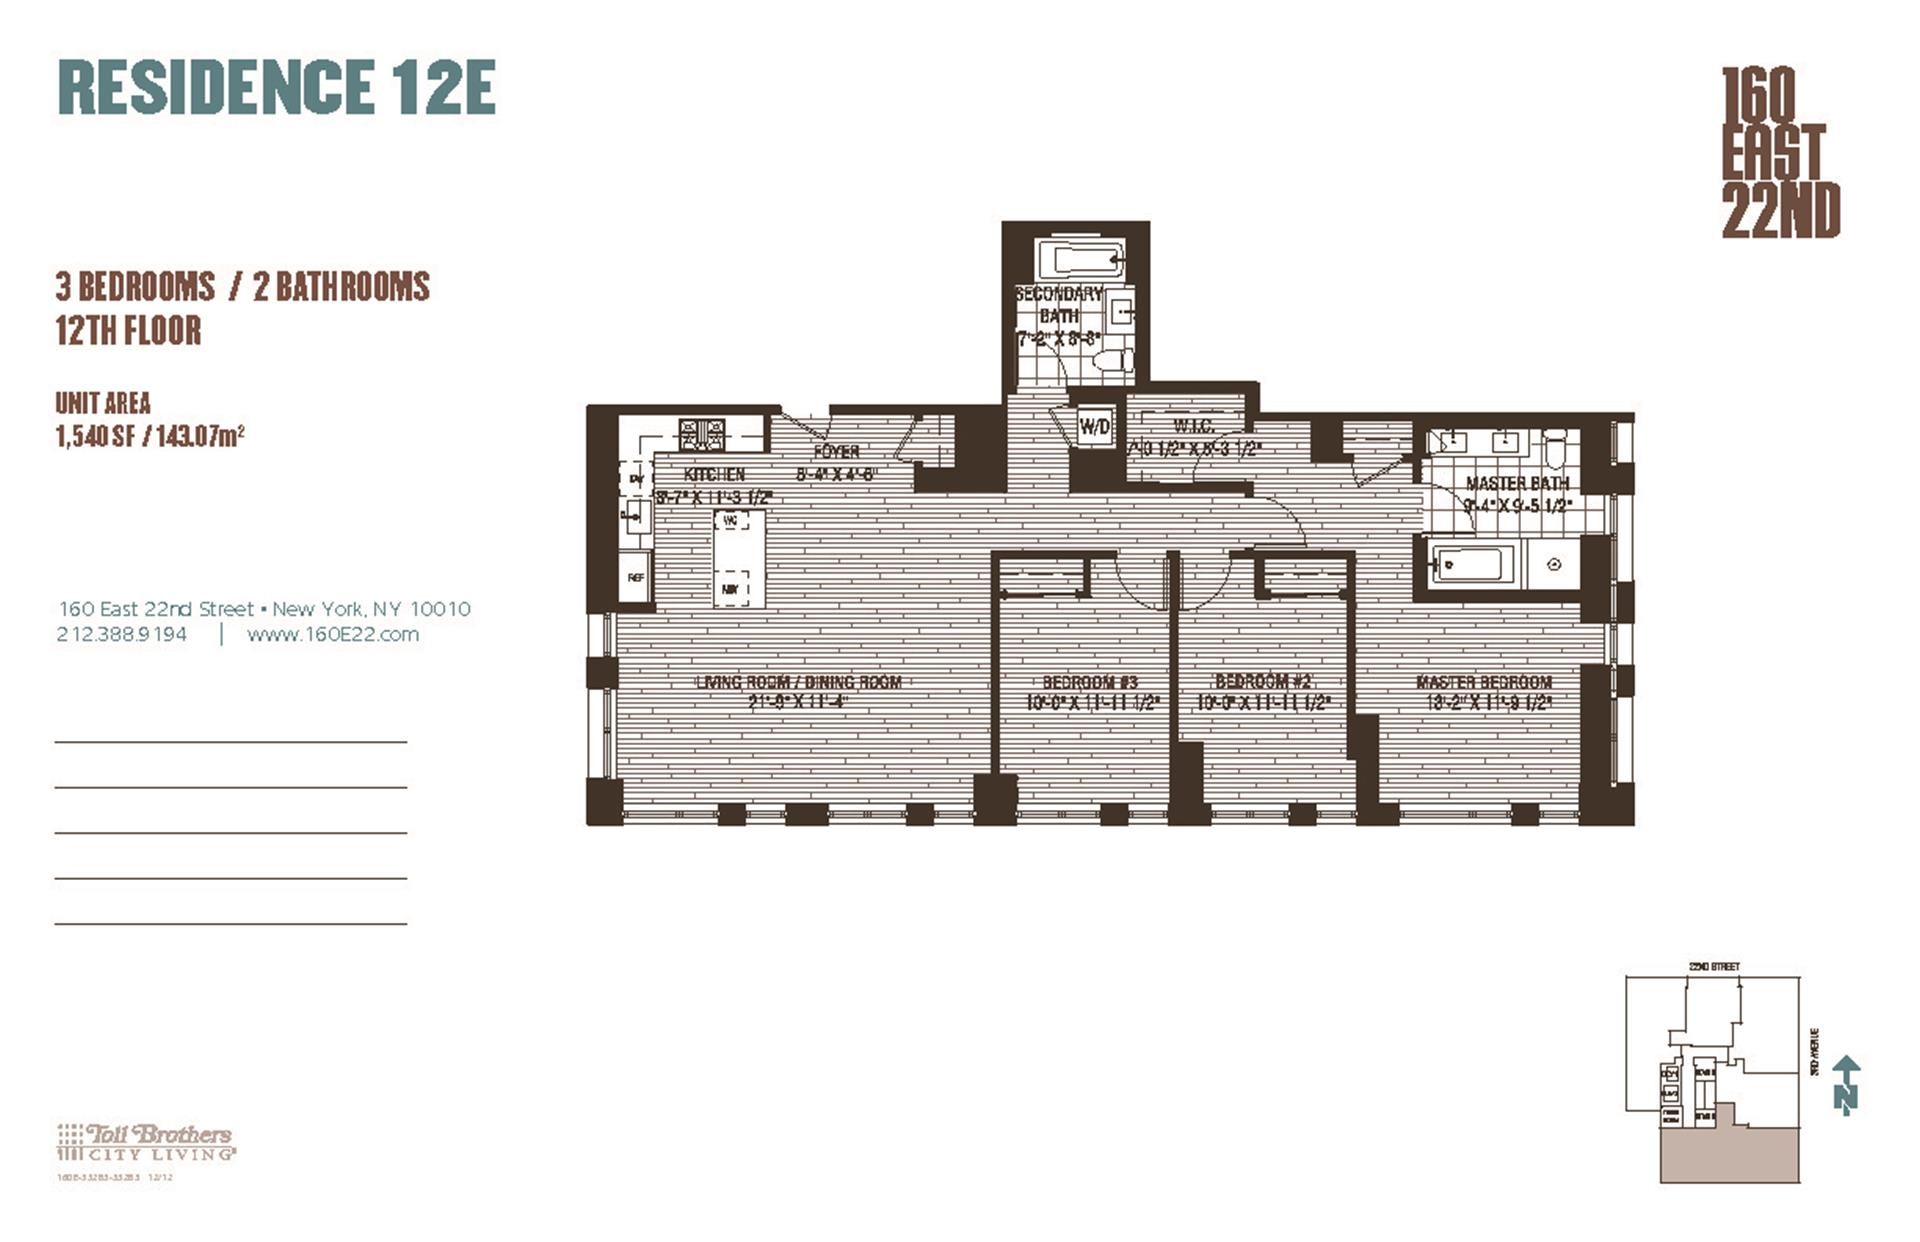 Floor plan of 160 East 22nd St, 12E - Gramercy - Union Square, New York